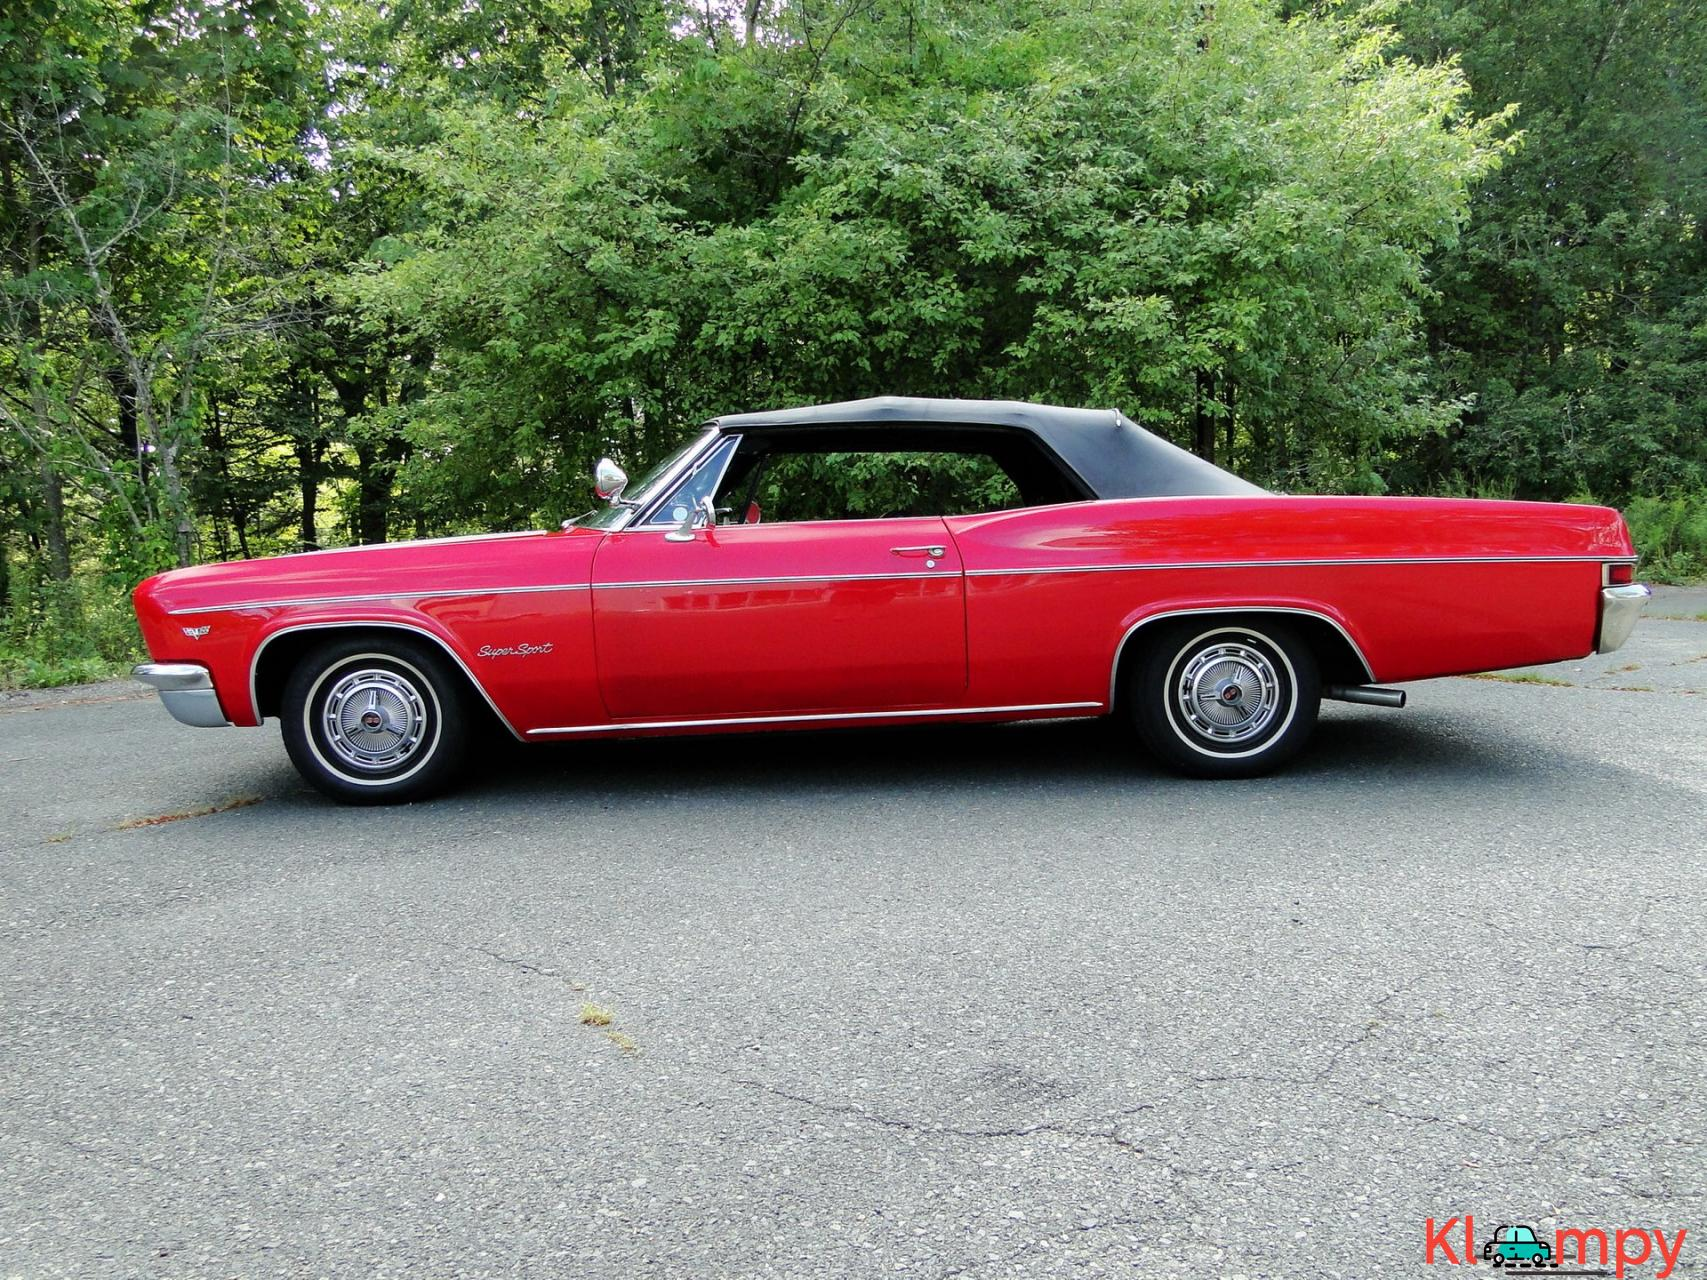 1966 Chevrolet Impala SS Convertible Regal Red V8 - 11/23